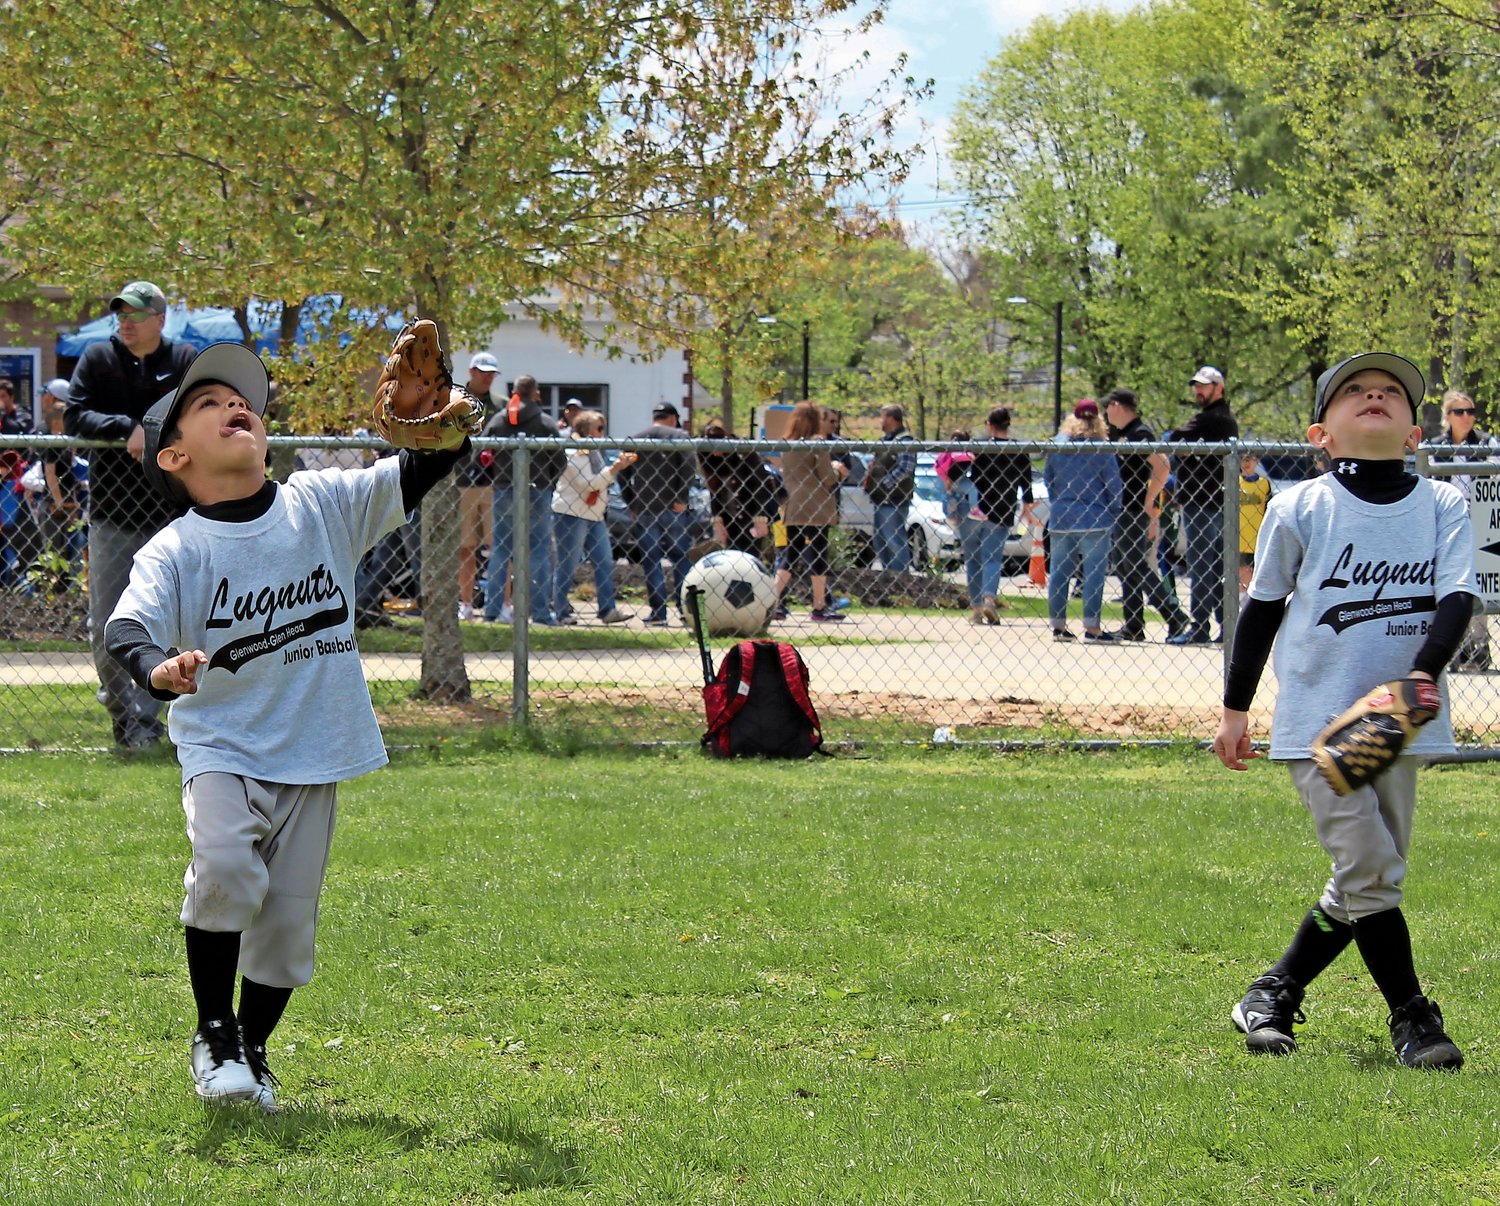 Avery Cordero, left, of the Lugnuts, focused on a fly ball coming his way as his teammate, Connor Cleary, looked on.